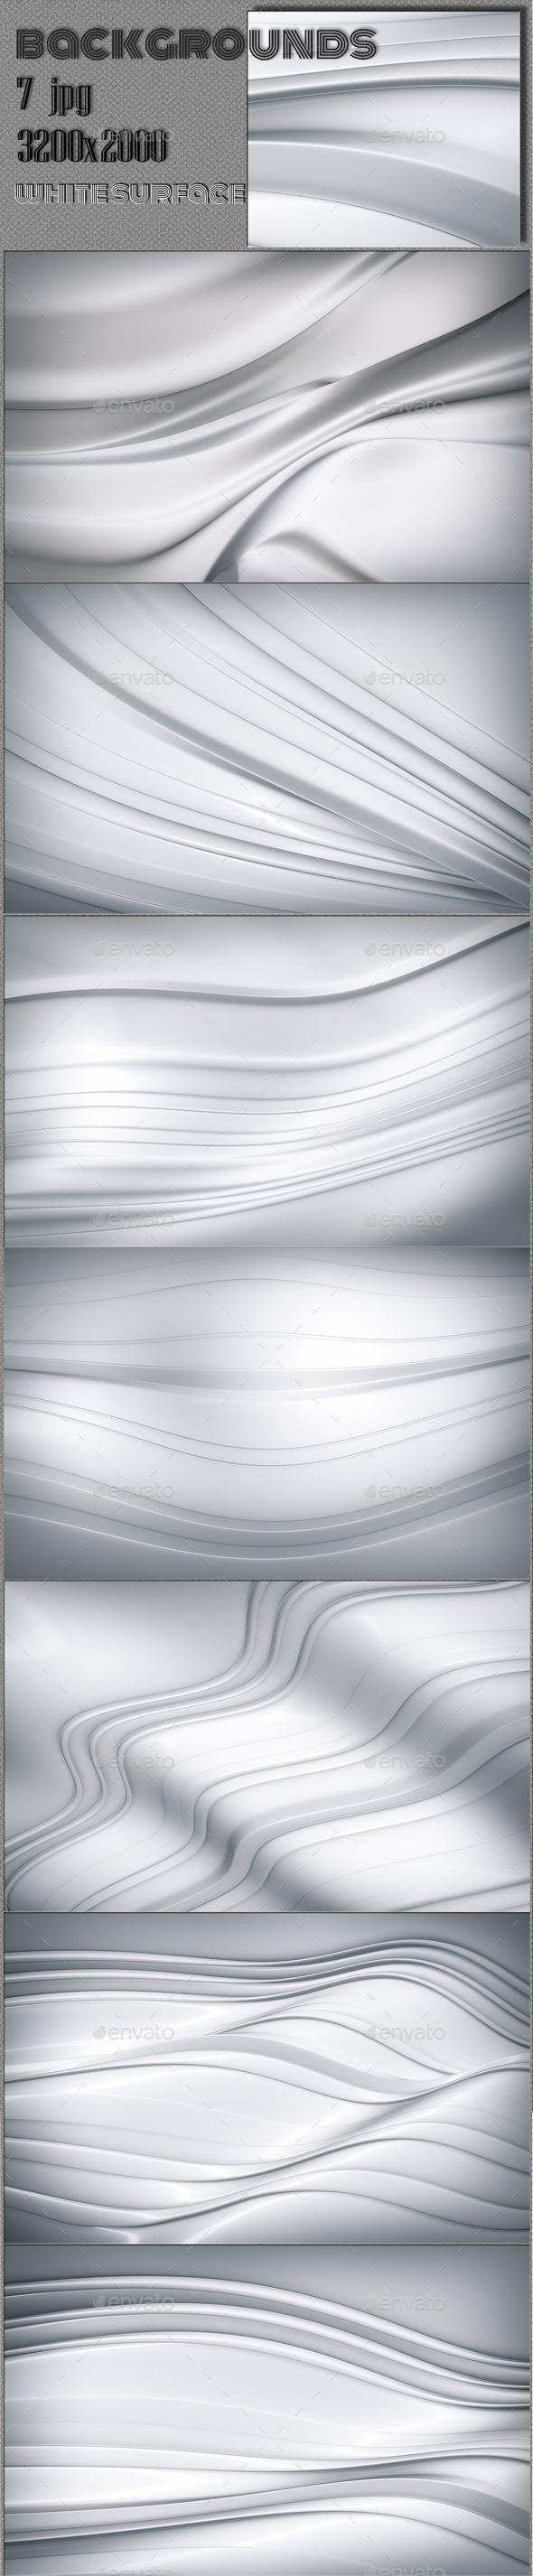 White Glossy Waves - 3D Backgrounds